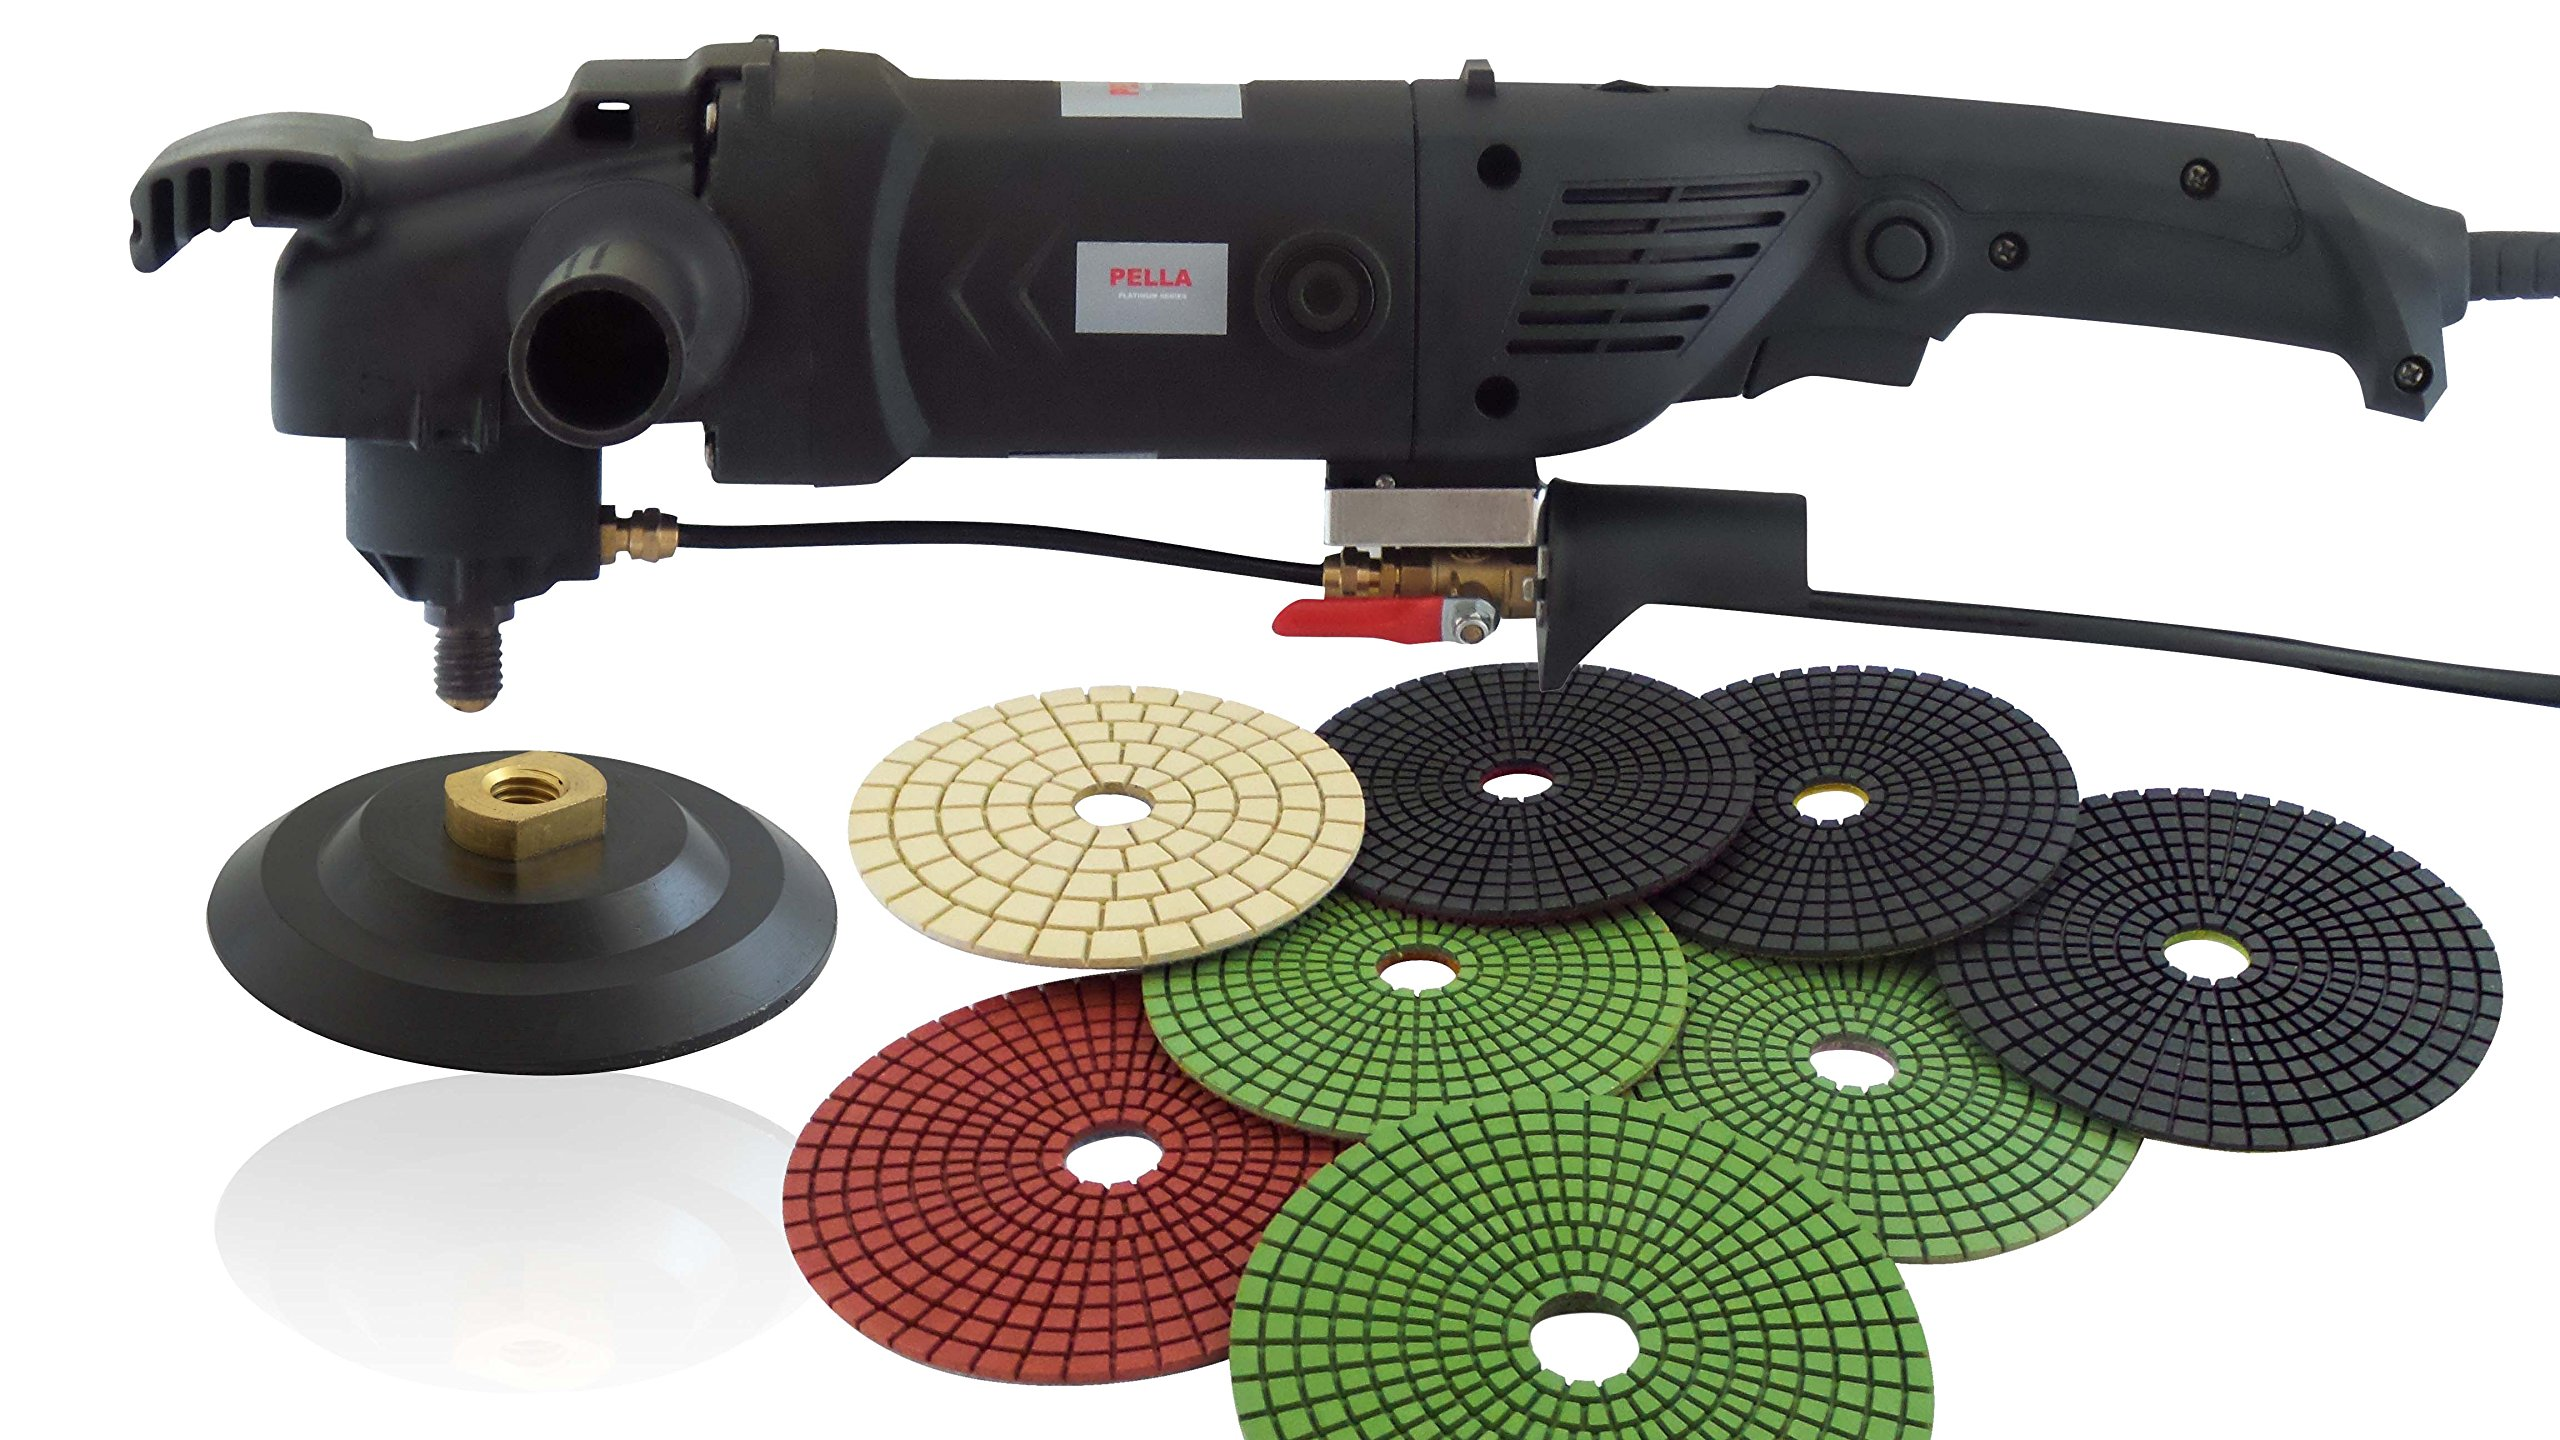 PELLA USA 1200 WATT HEAVY DUTY CONCRETE POLISHER WITH 5'' 8PC PADS AND 5'' SEMI-RIGID BACKER PAD